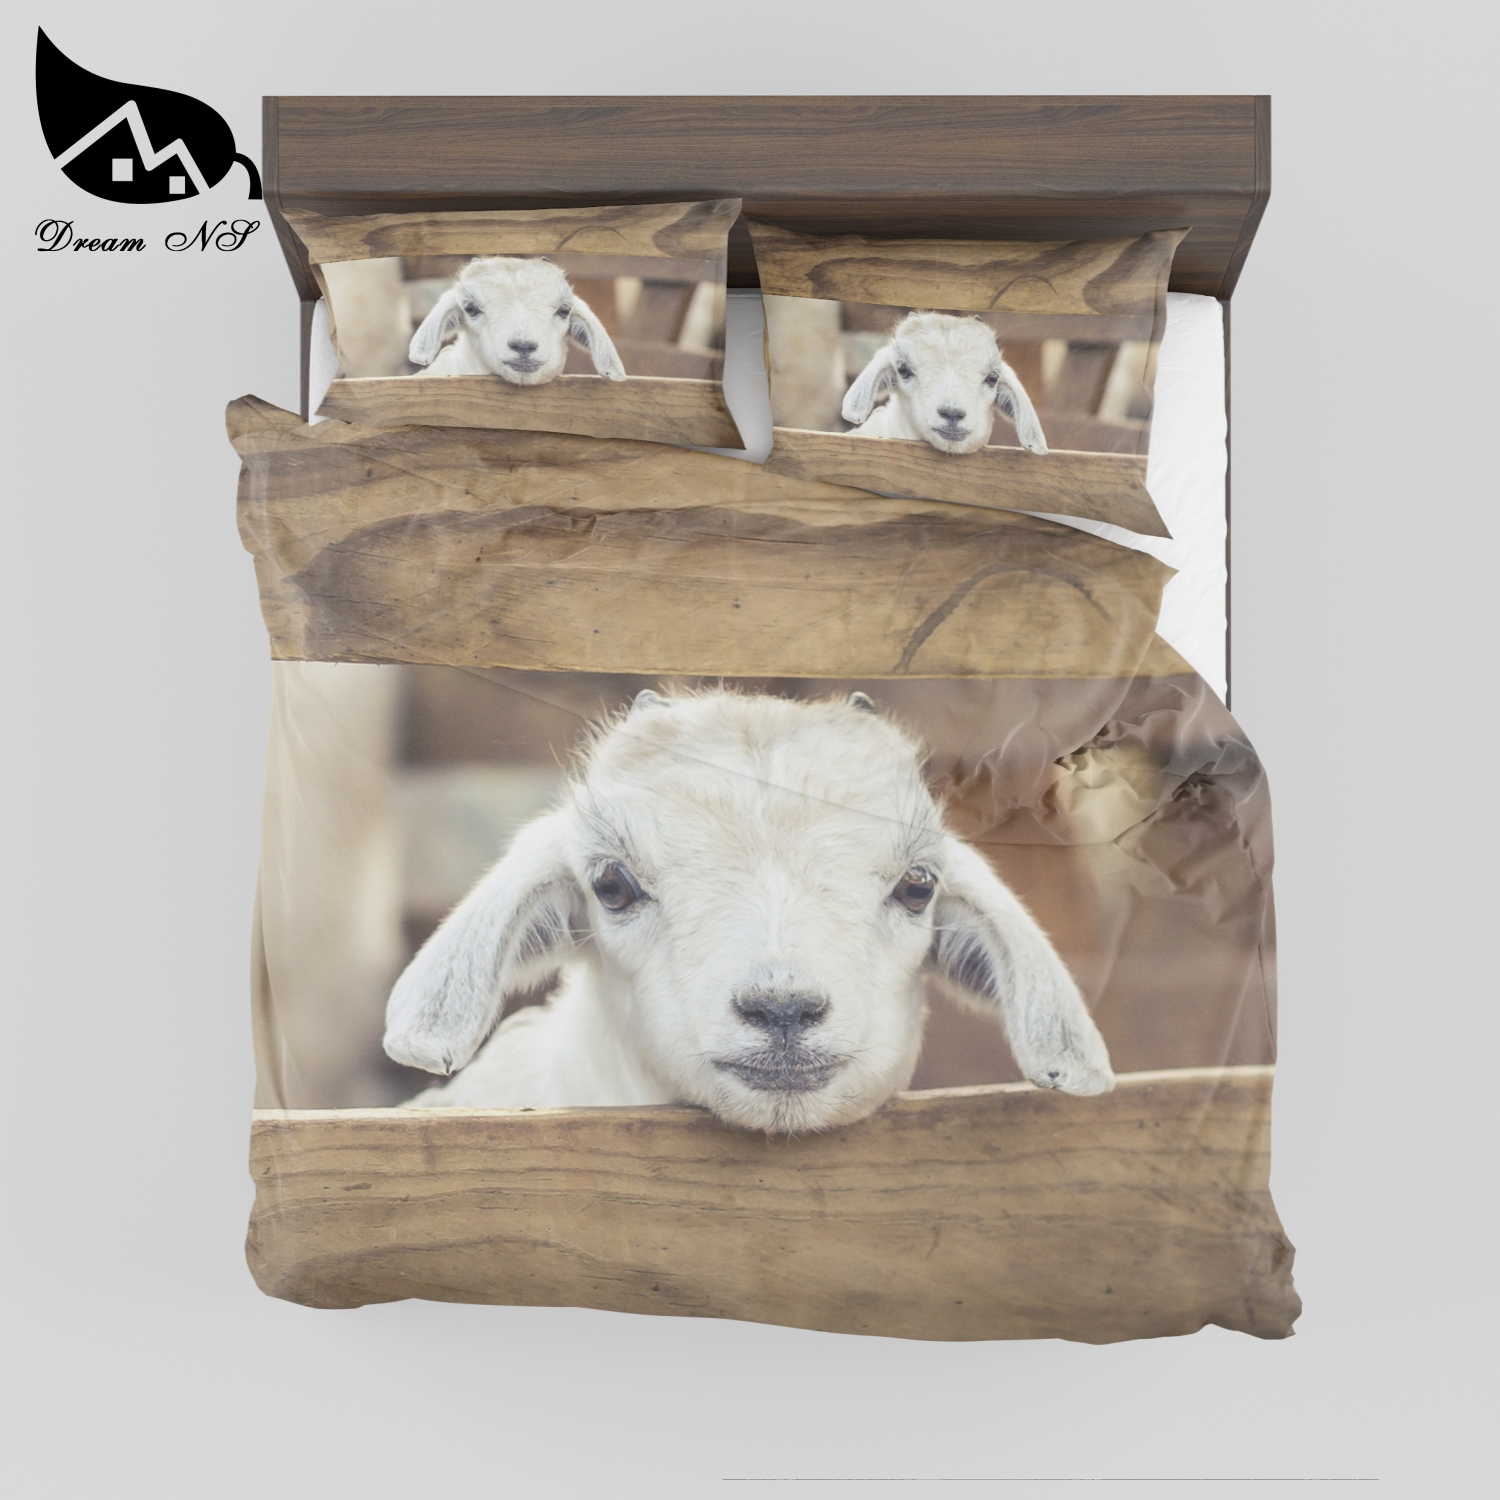 Dream NS Polyester Cotton Super Soft Bedroom bedding Cute Lamb High Definition Print Quilt Case Pillowcase Set MSY10